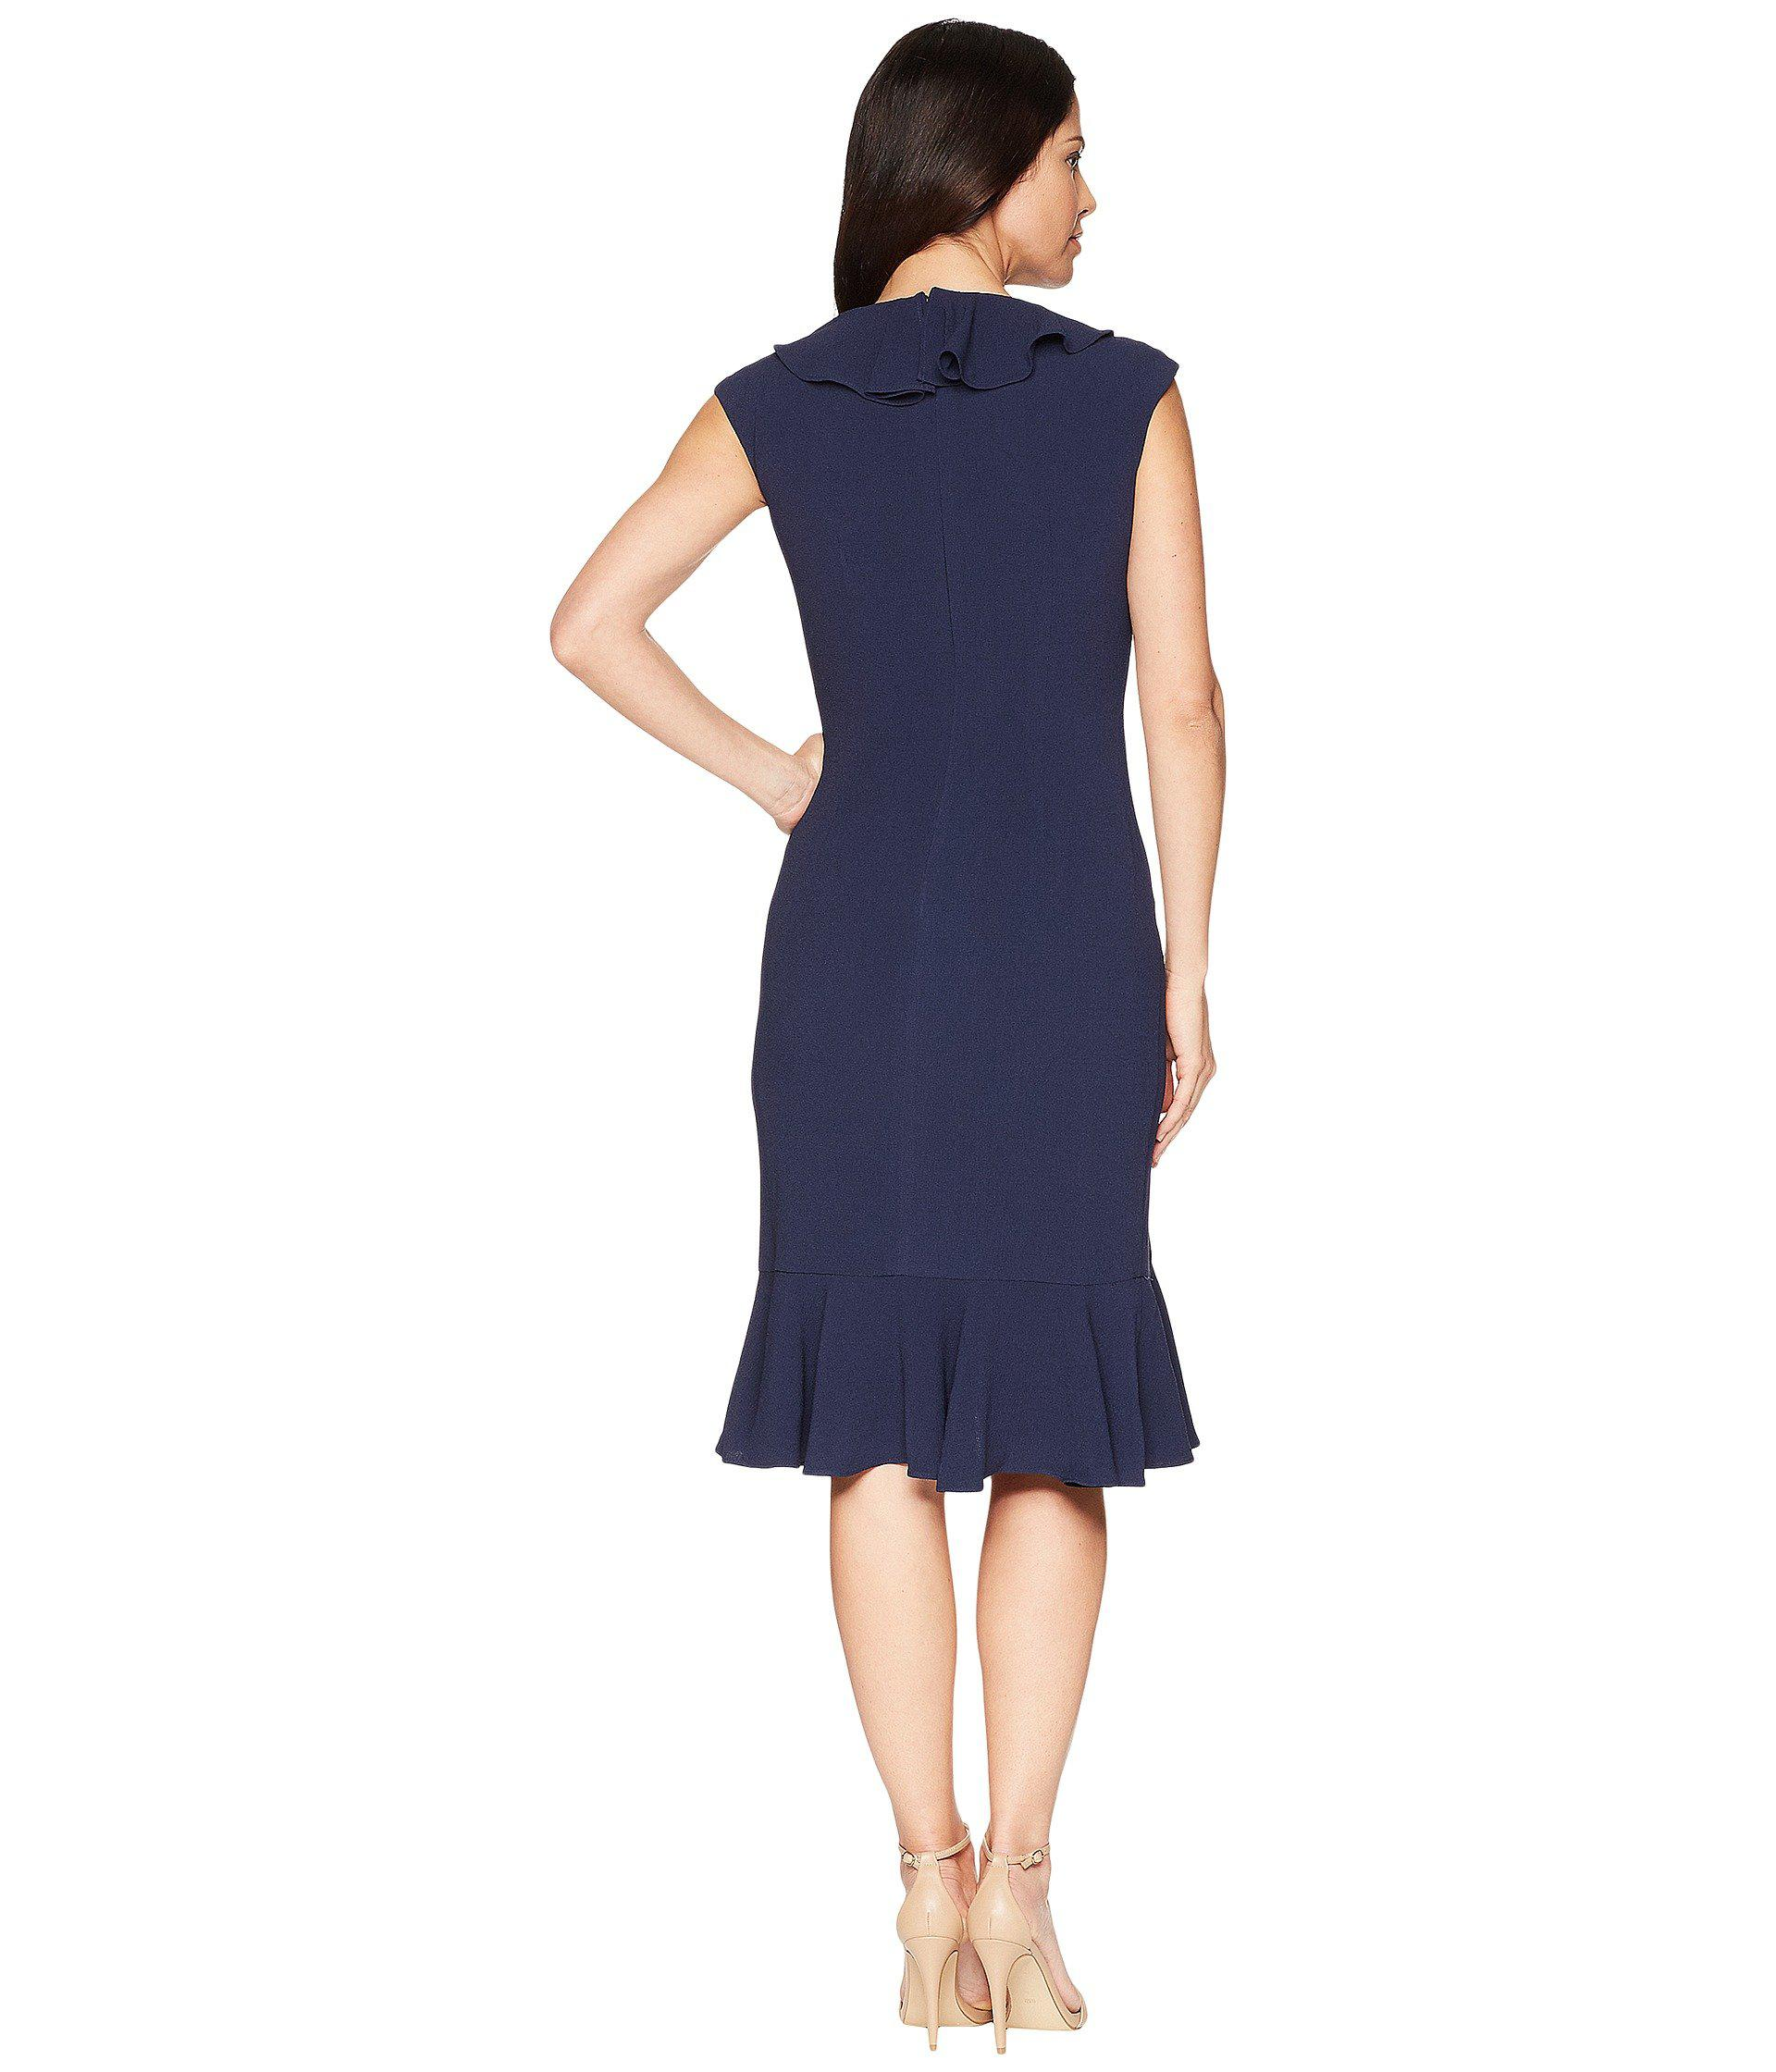 09e770f7024 Maggy London - Blue 30s Crepe Cascade Ruffle Front Dress (navy) Women s  Dress -. View fullscreen